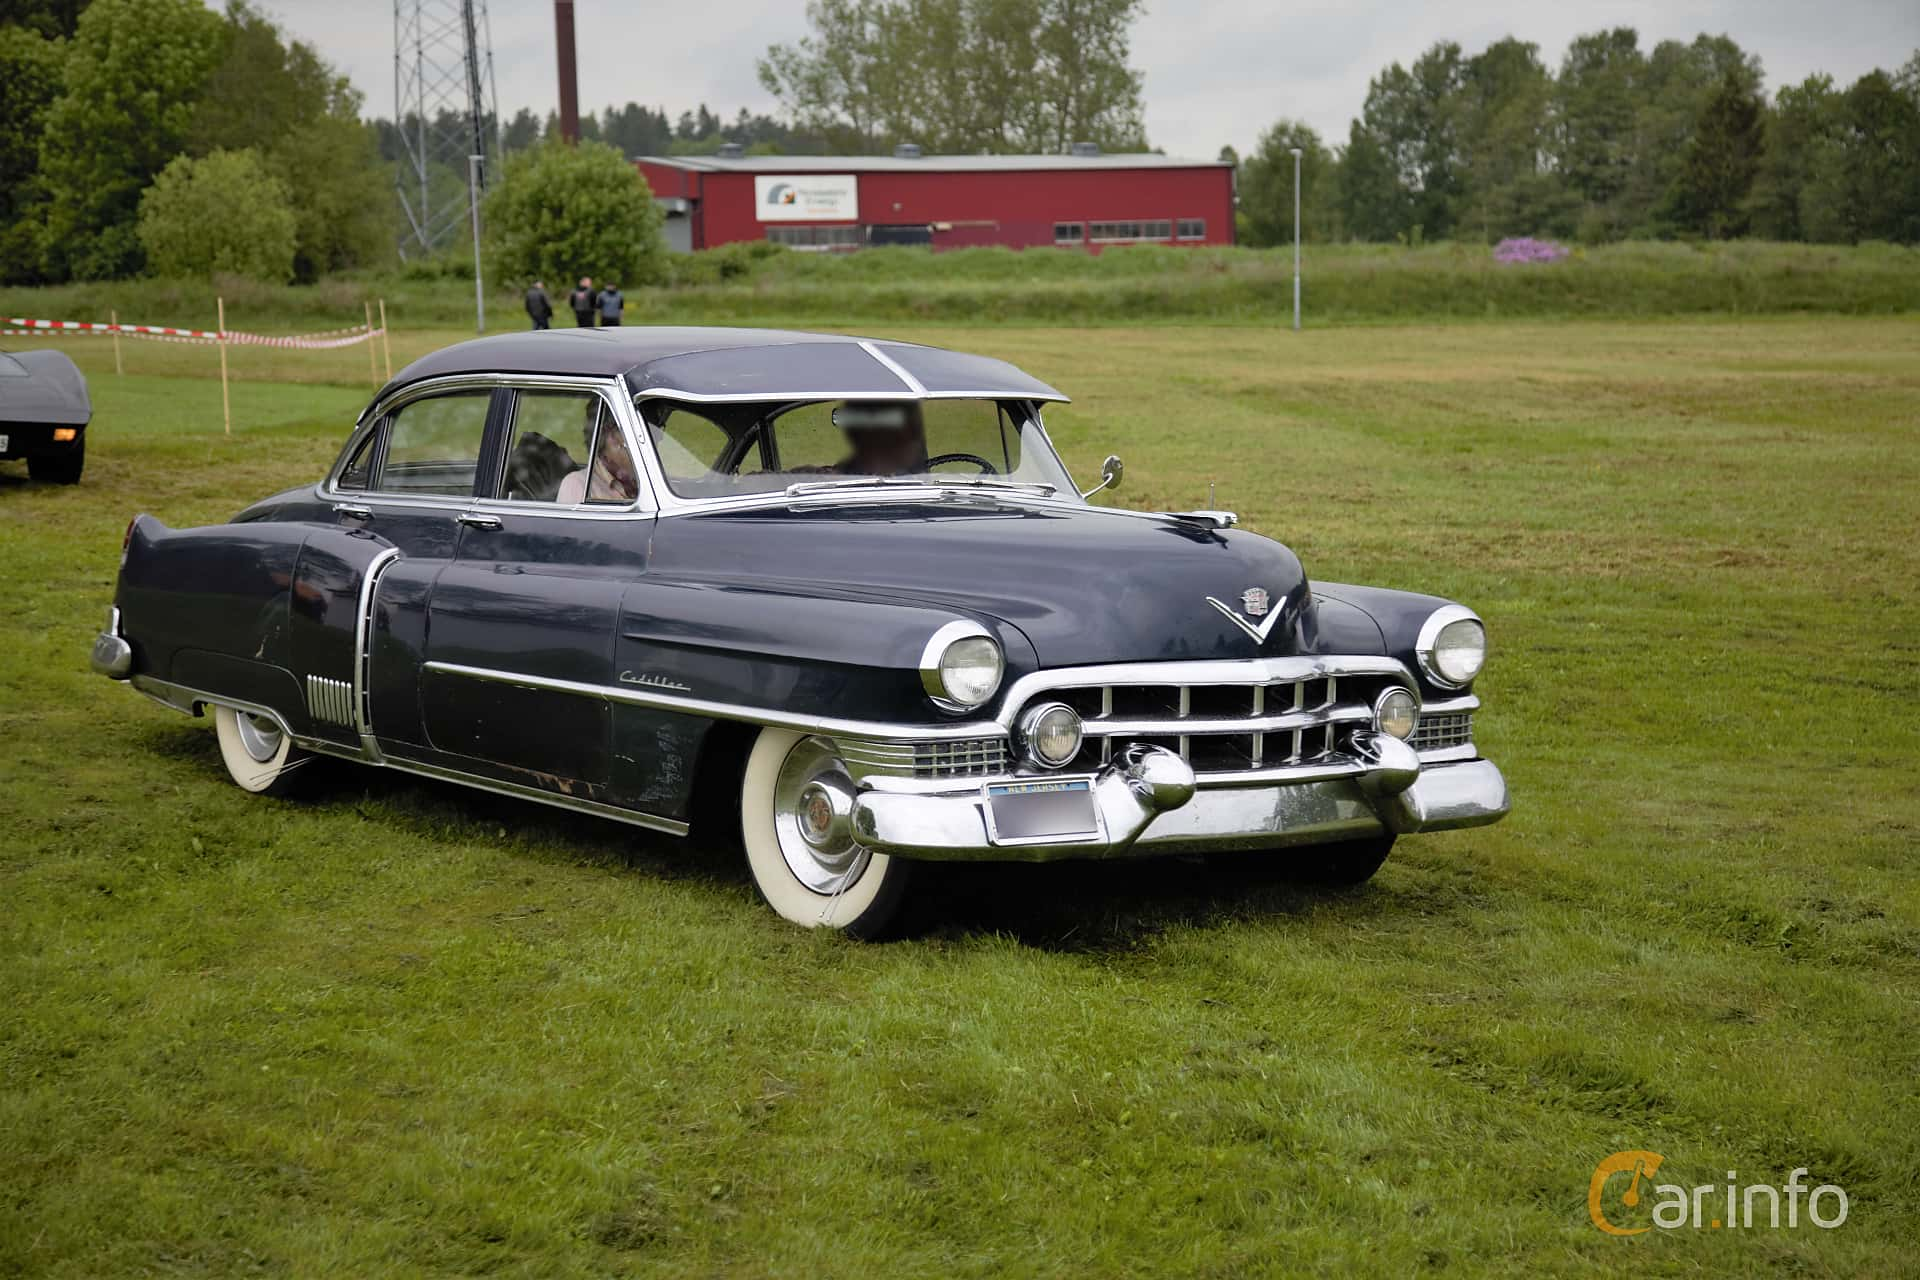 1 Images Of Cadillac Fleetwood Sixty Special 54 V8 Hydra Matic 1951 Sedan Front Side 162ps